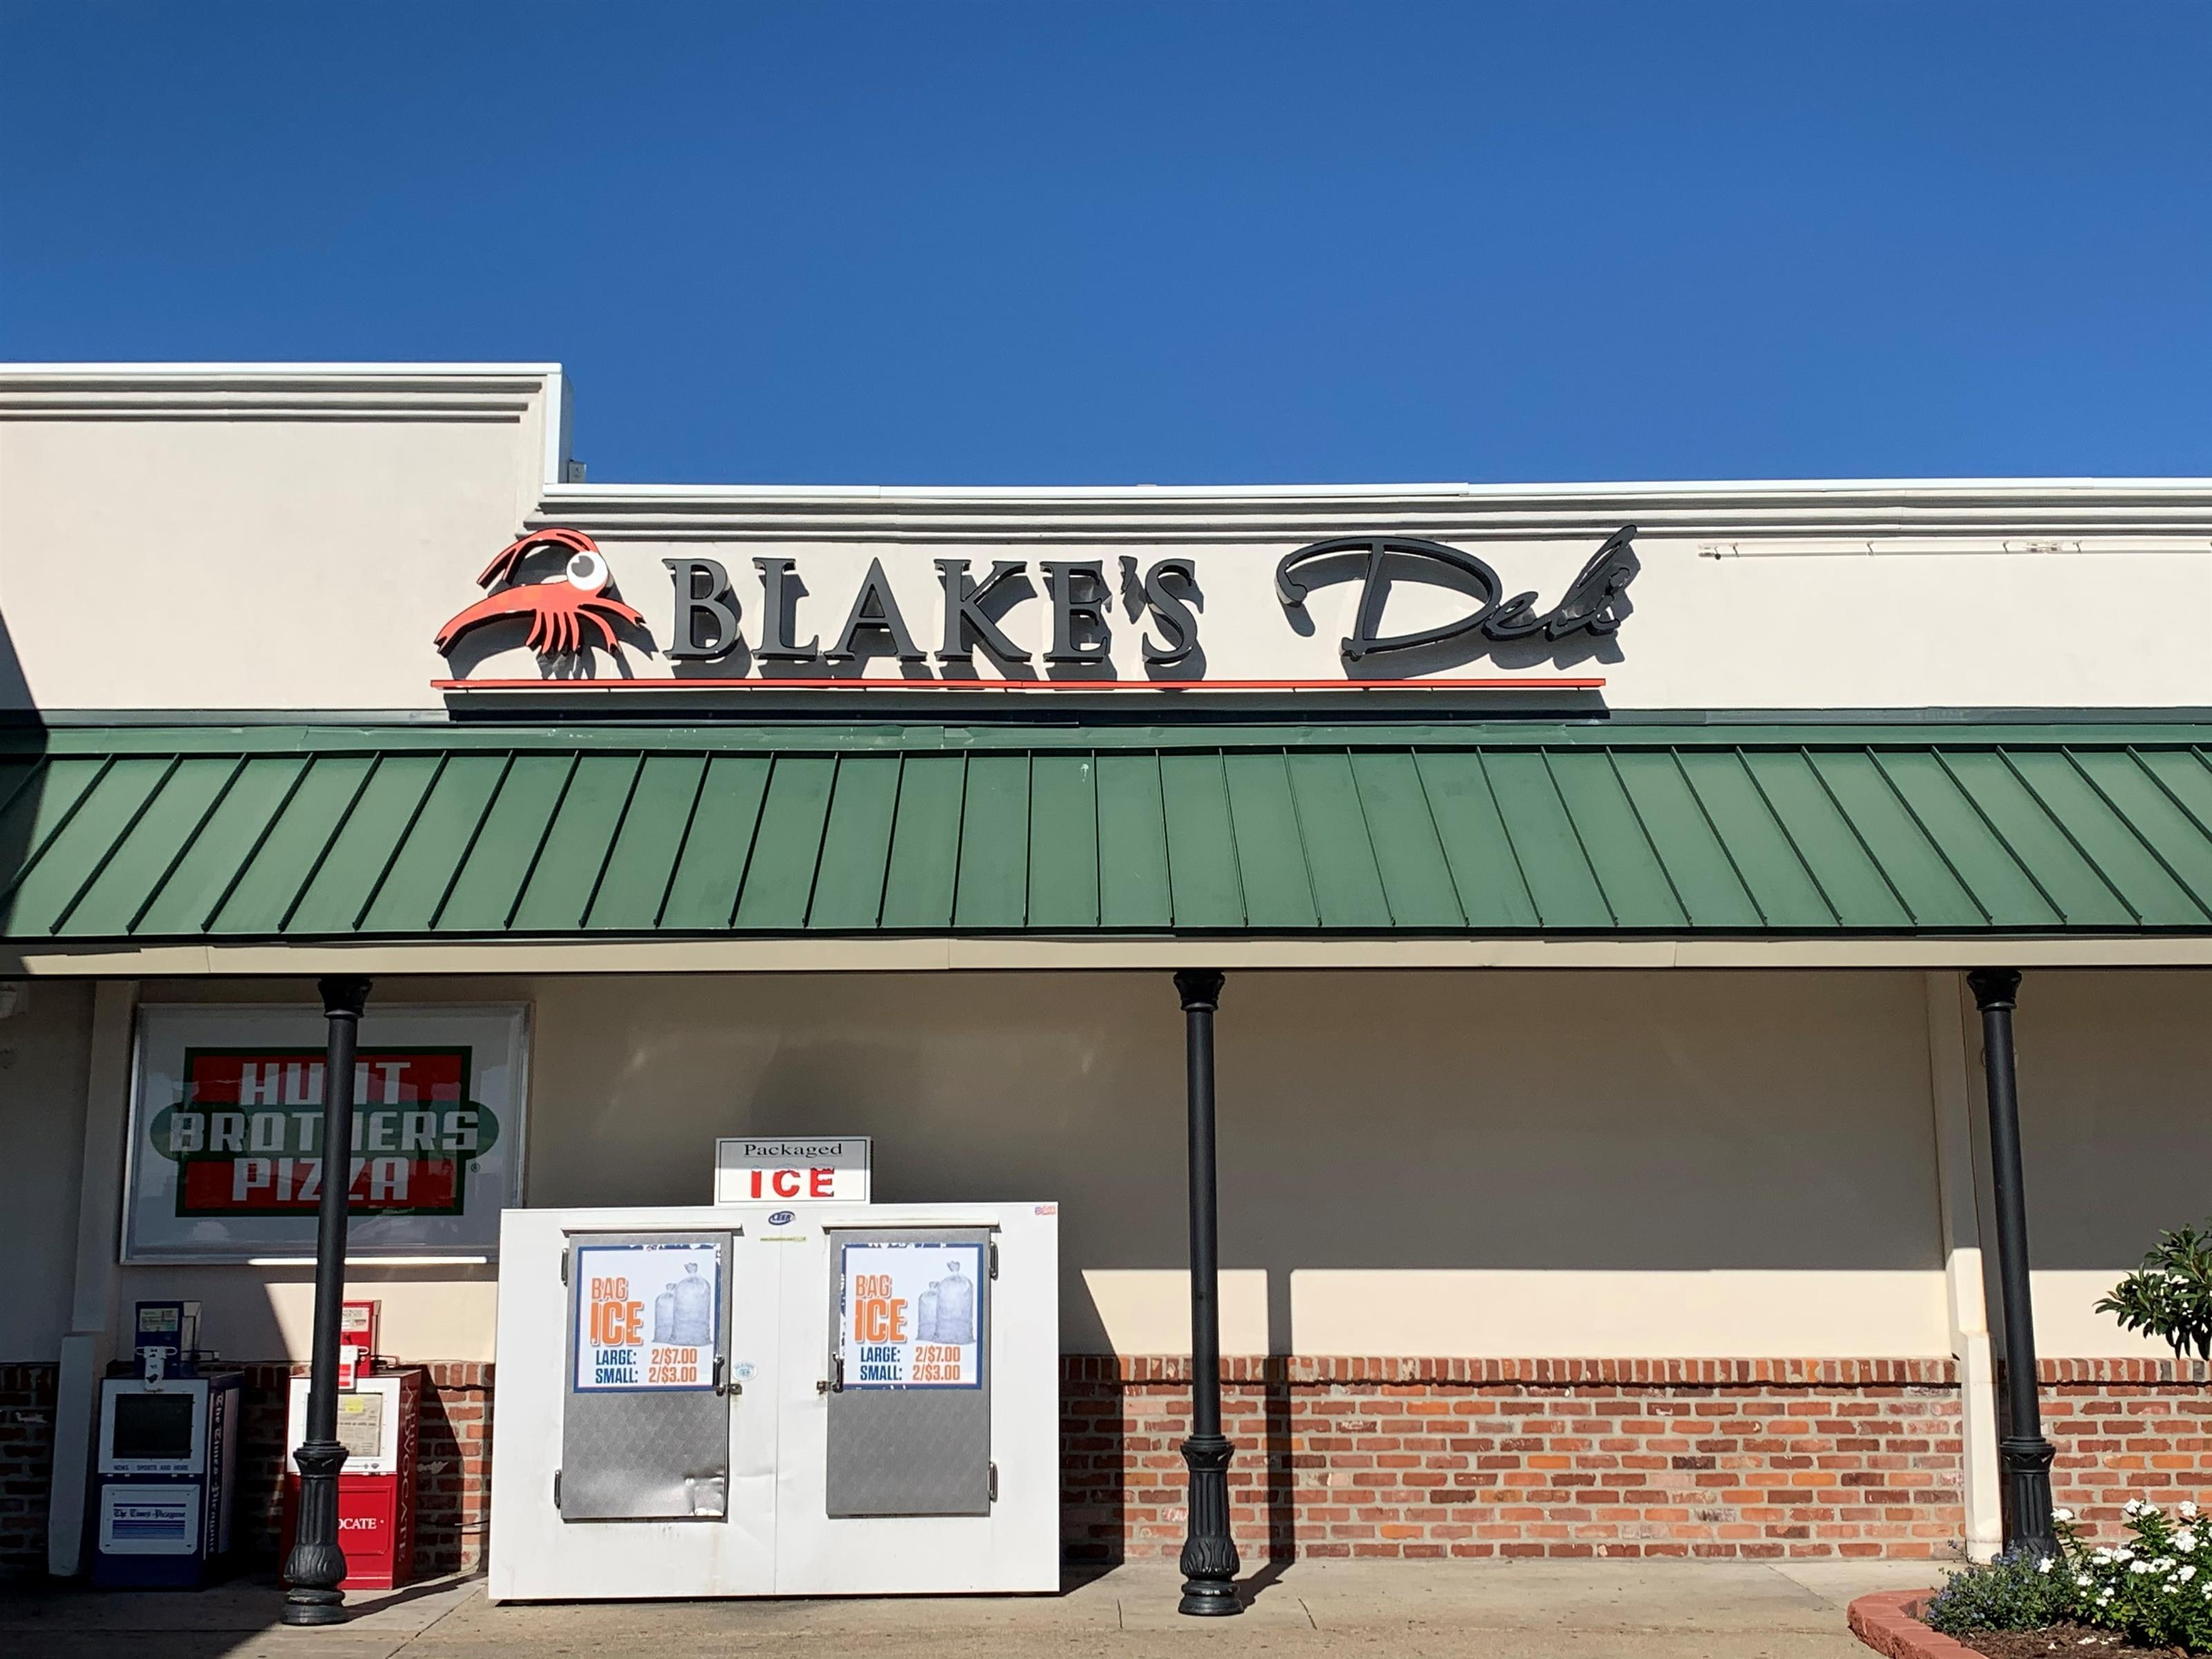 Exterior of Blake's deli with ice storage out front